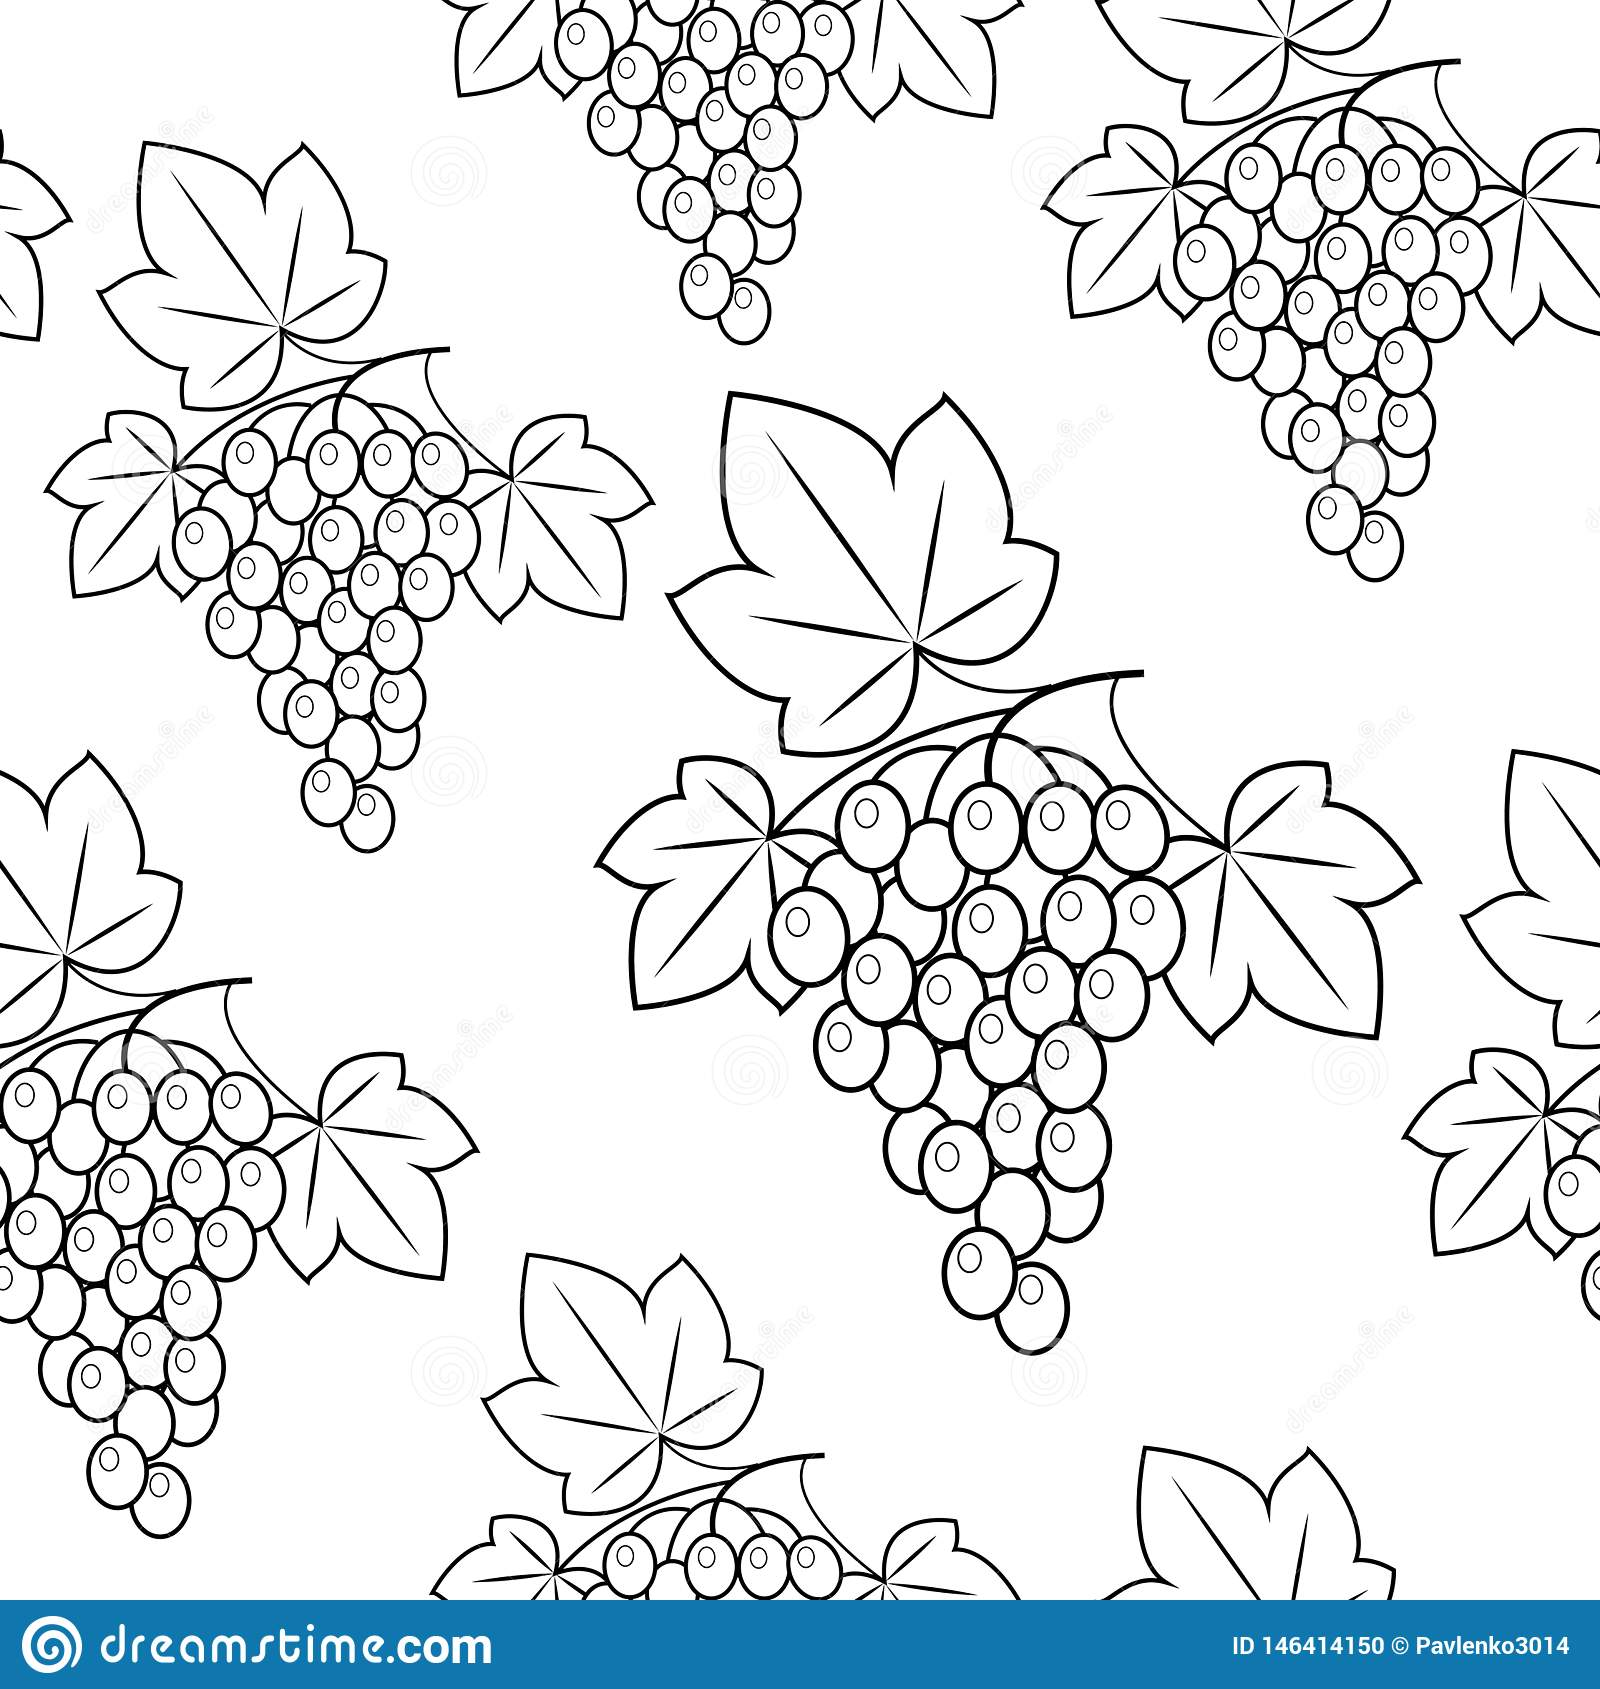 Bunch of grapes on a green background. Beautiful pattern. Gift wrap. Vector illustration